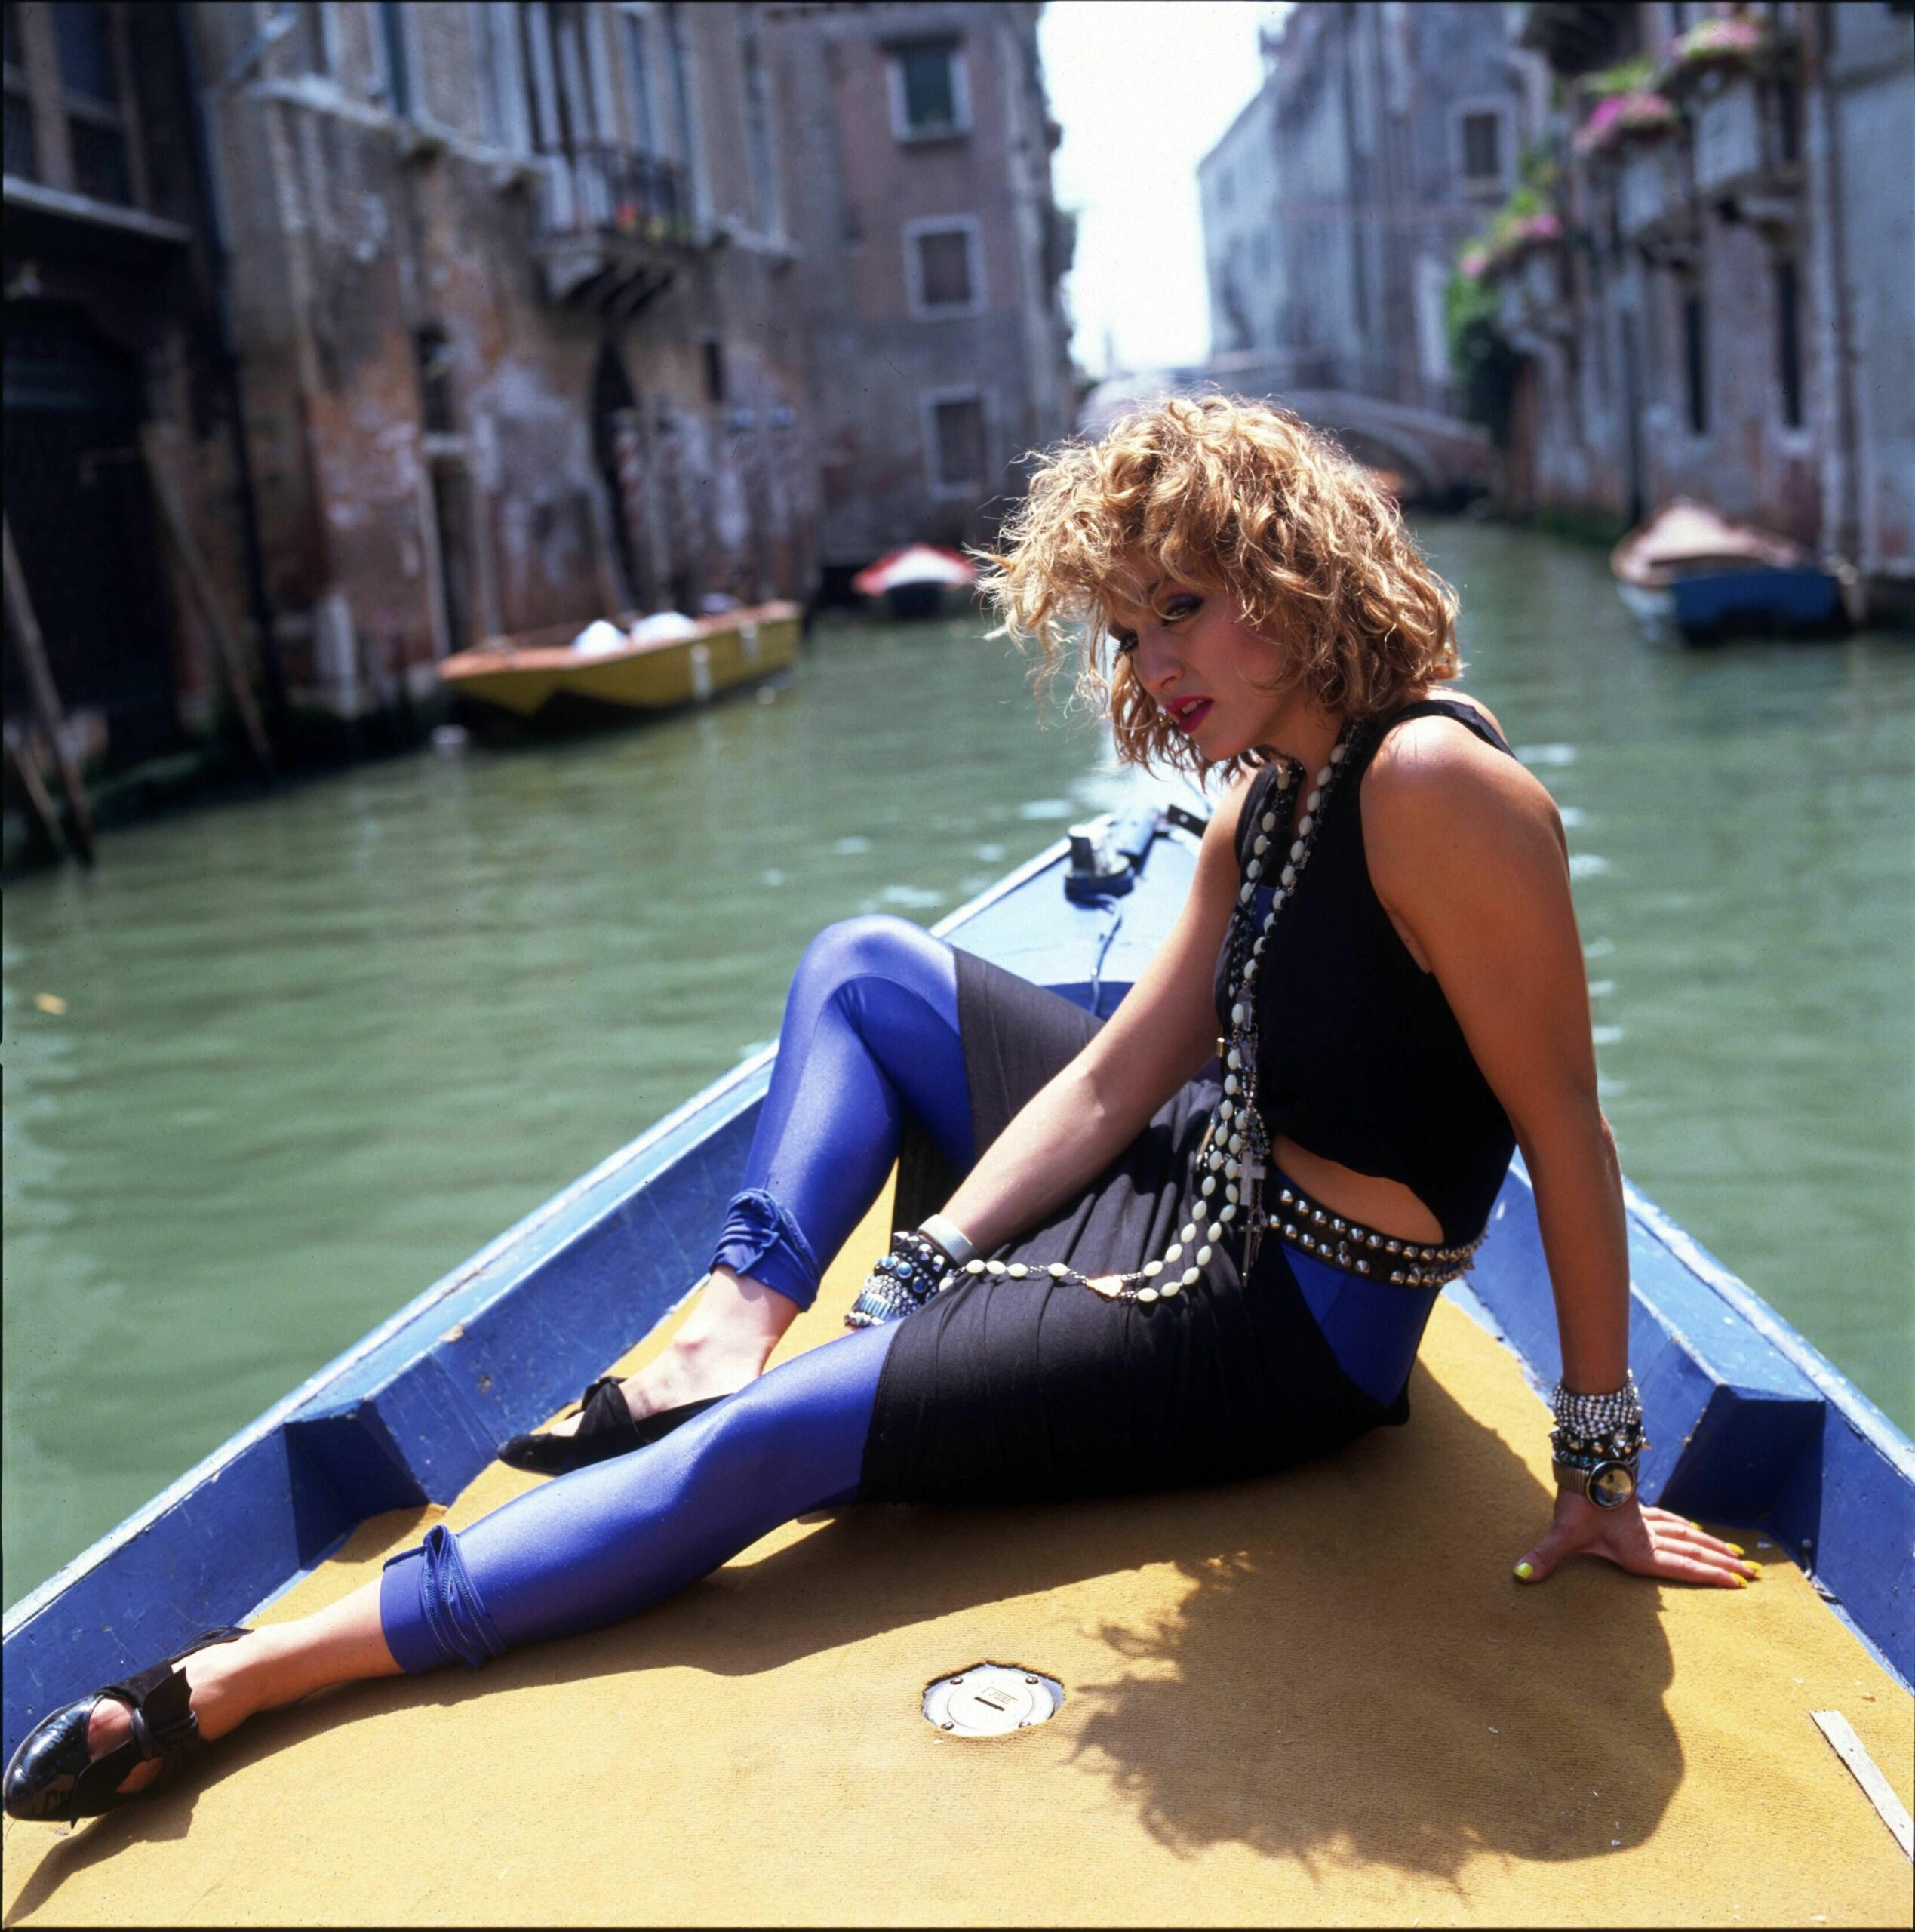 Madonna wearing a black dress and bright blue leggings, 1984] via 'Like a Virgin' official music video